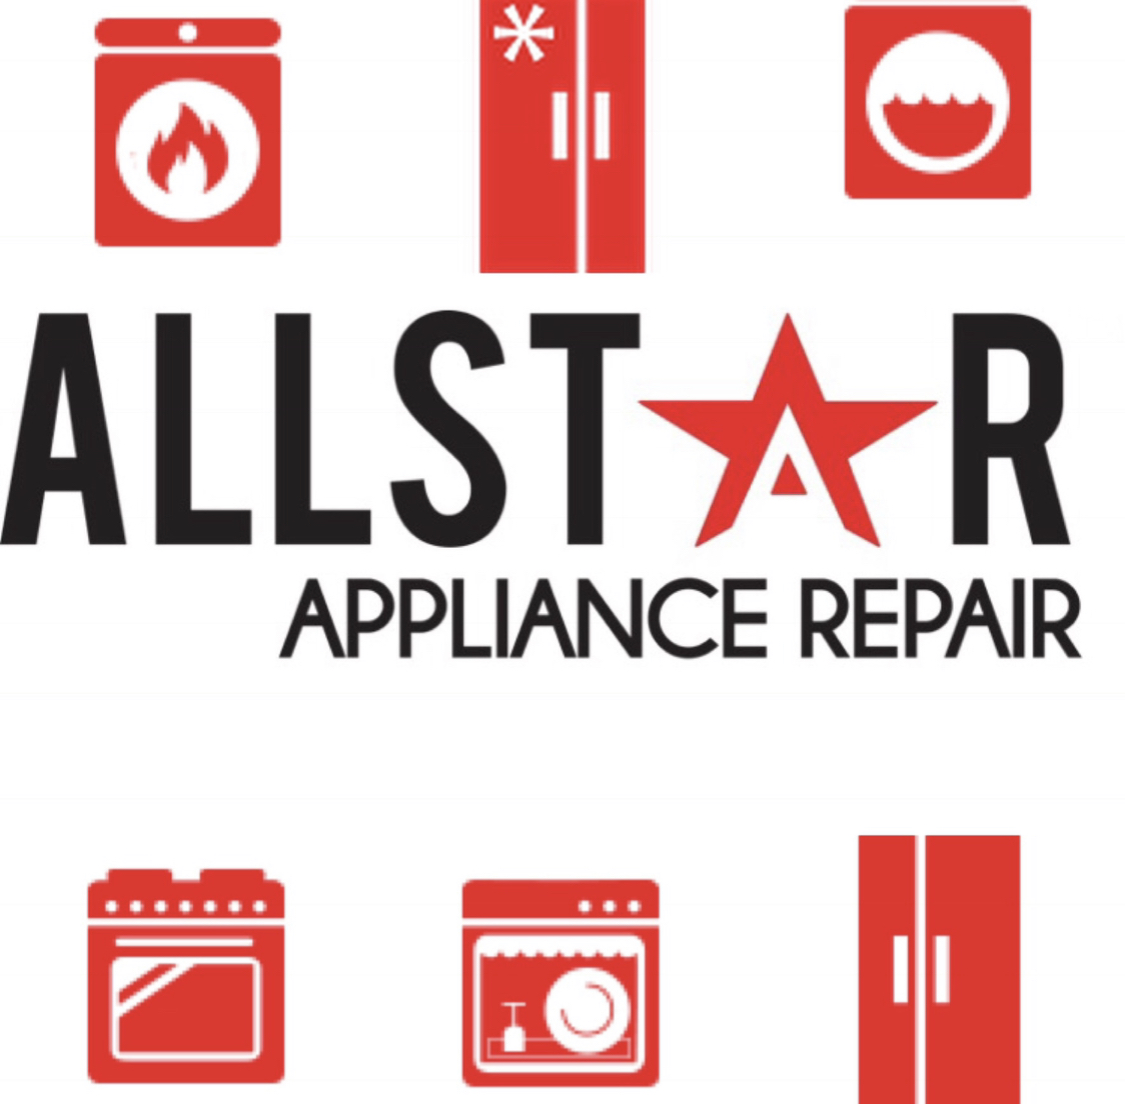 Allstar Appliance Repair LLC Earning Positive Reviews as Maryland's Biggest Repair Company